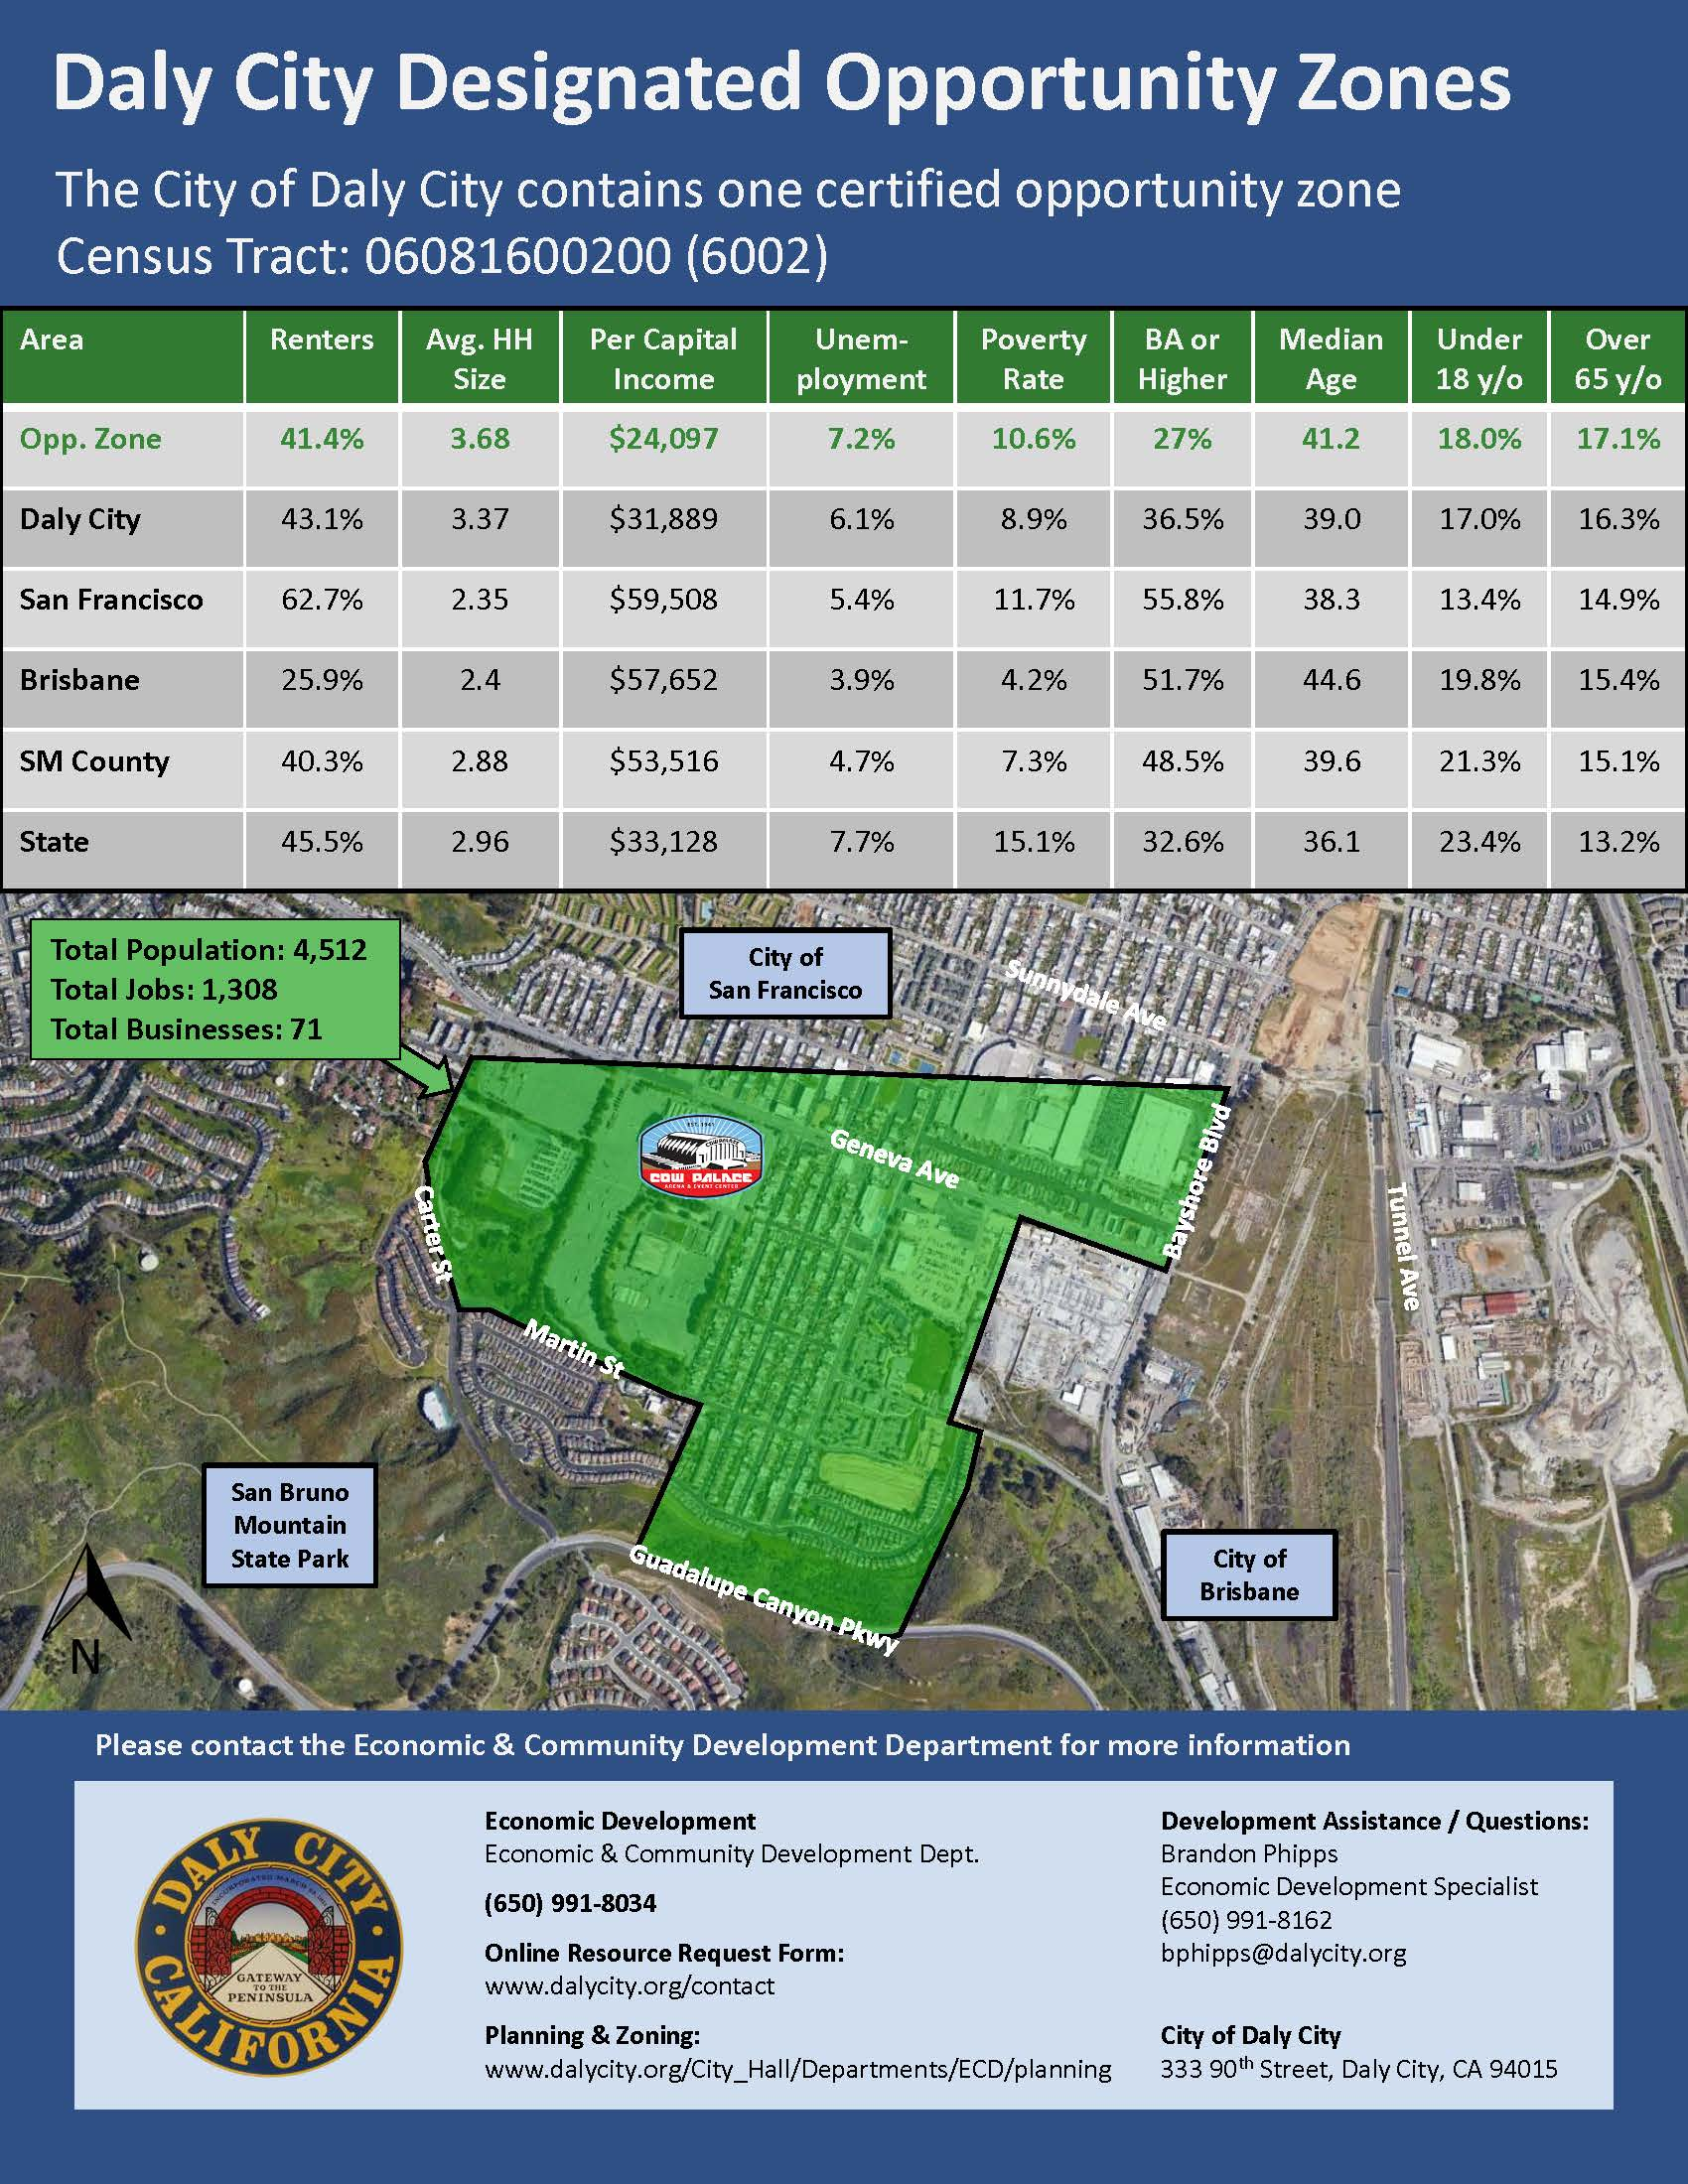 Daly City Designated Opportunity Zone (PDF)